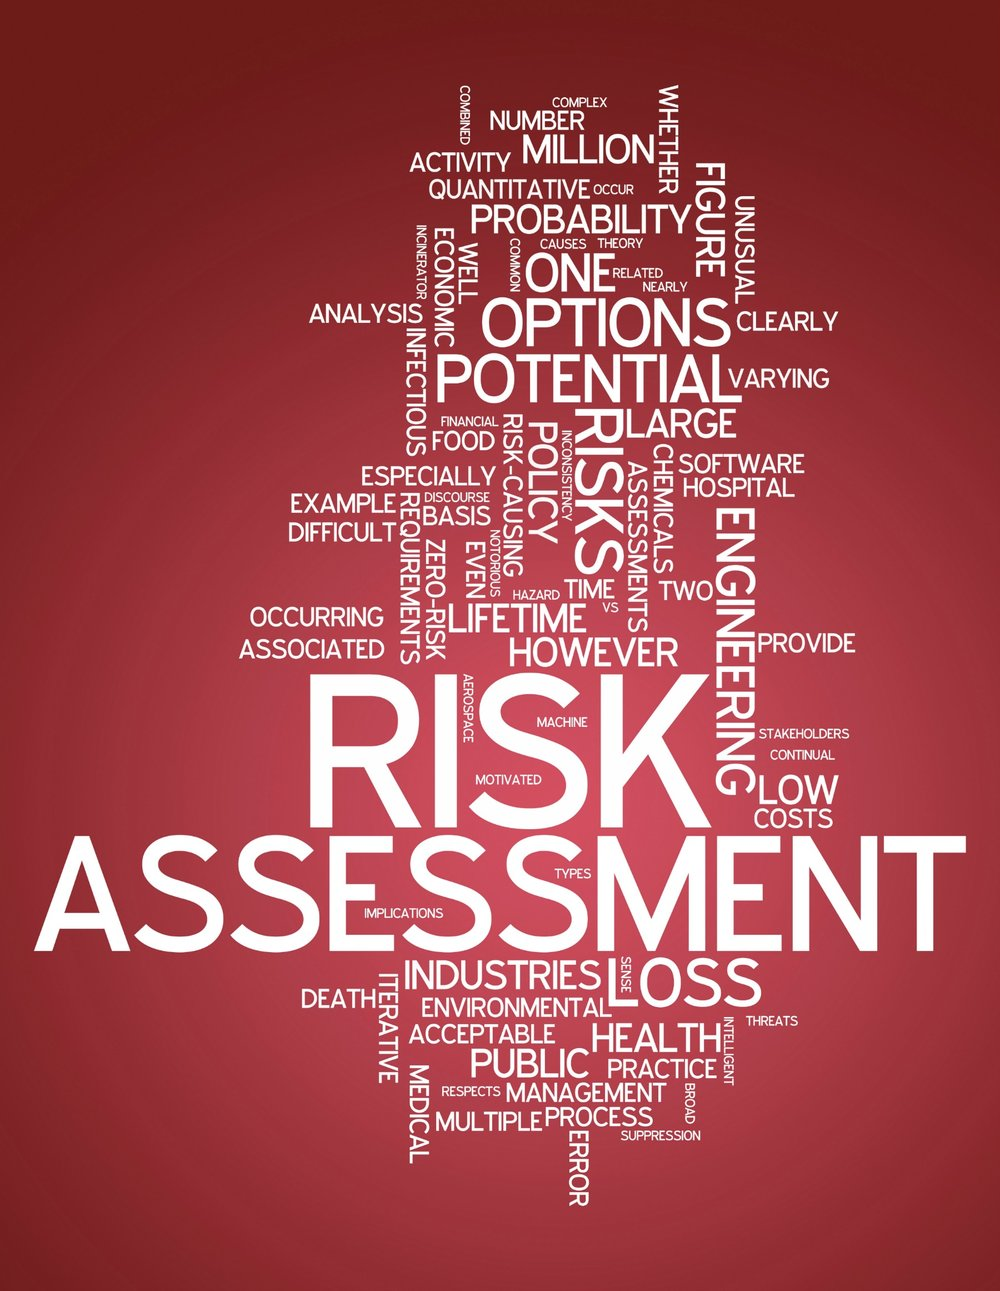 business-legal-risk-assessment.jpg